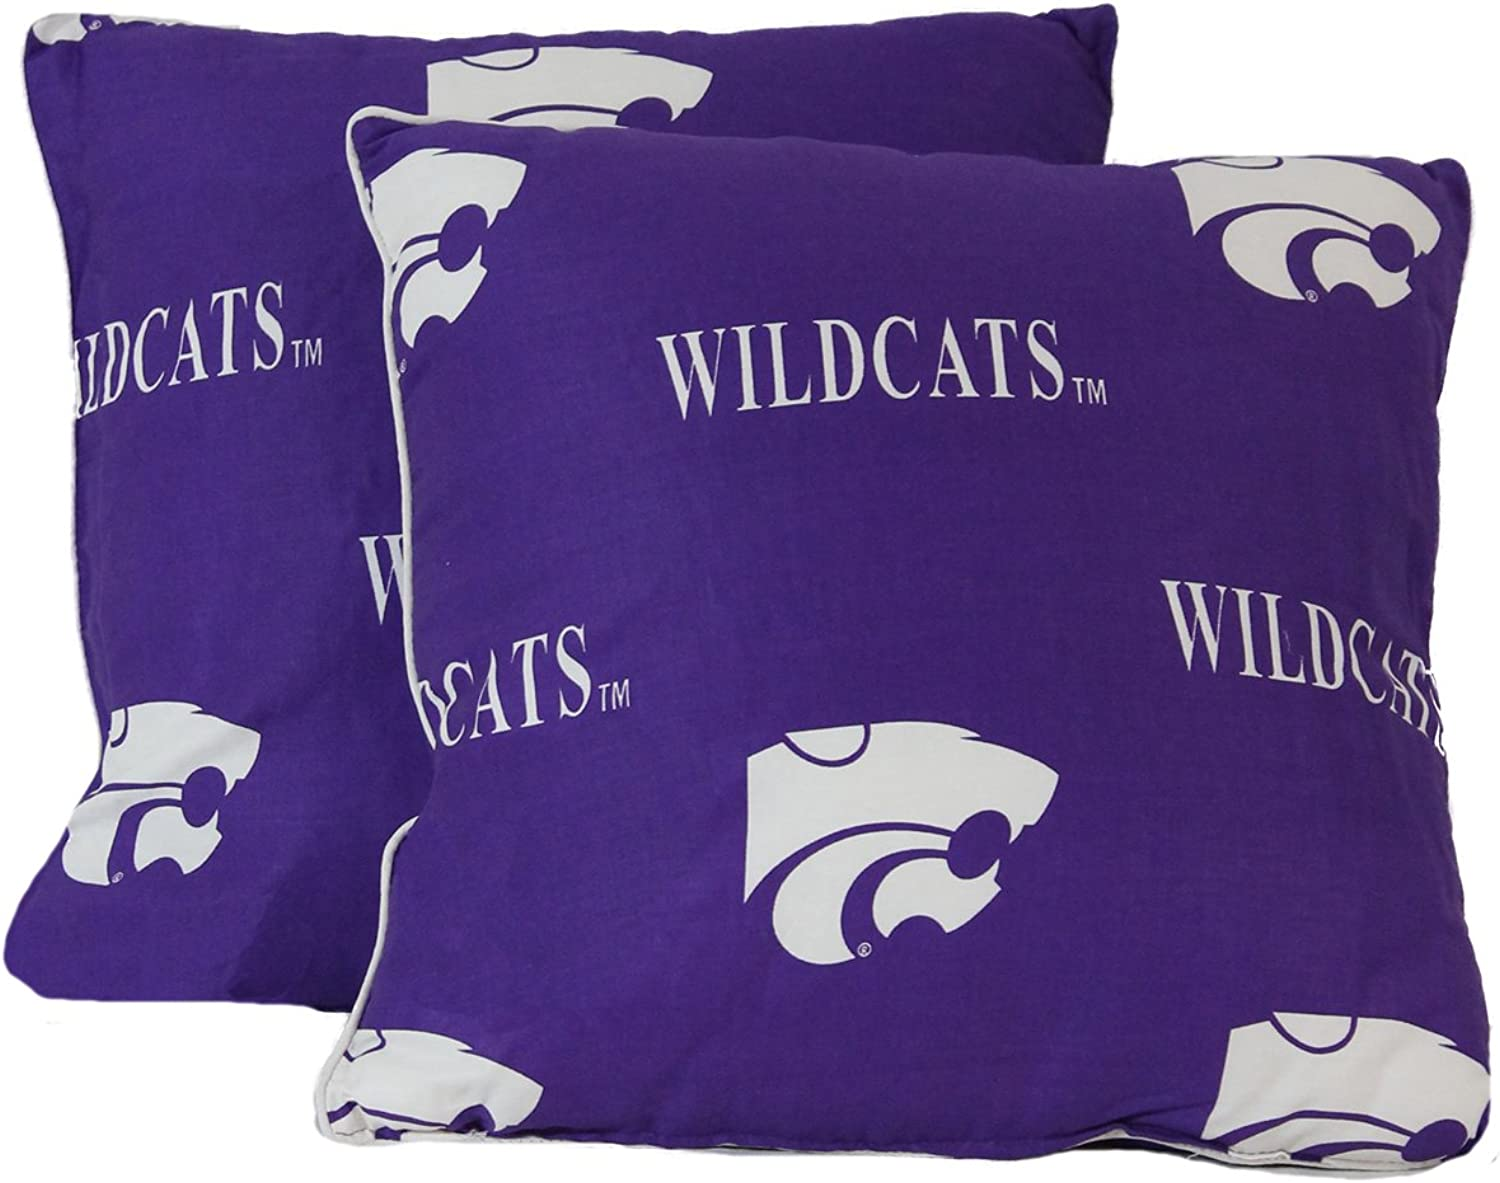 College Covers Kansas State Wildcats Pair Decorative Pillow, 16 16